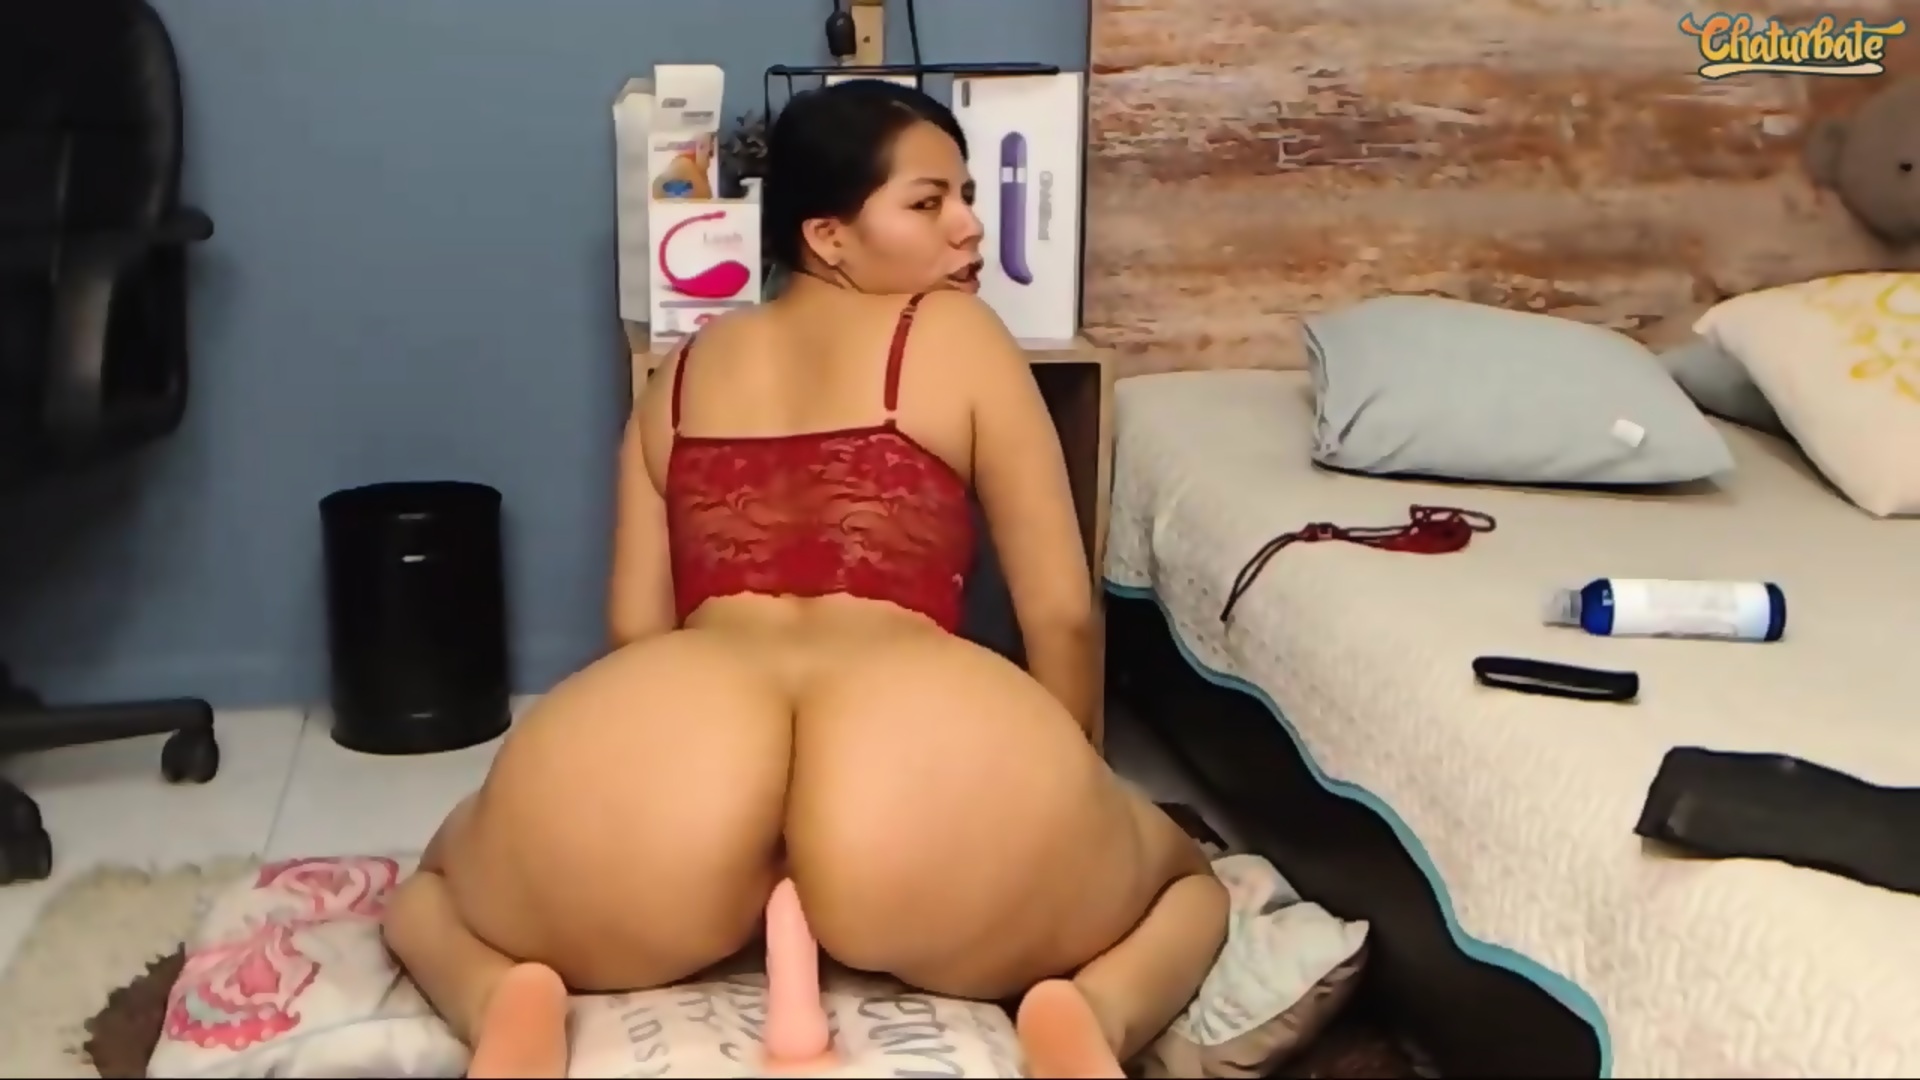 Big Booty Latina Dildo Webcam